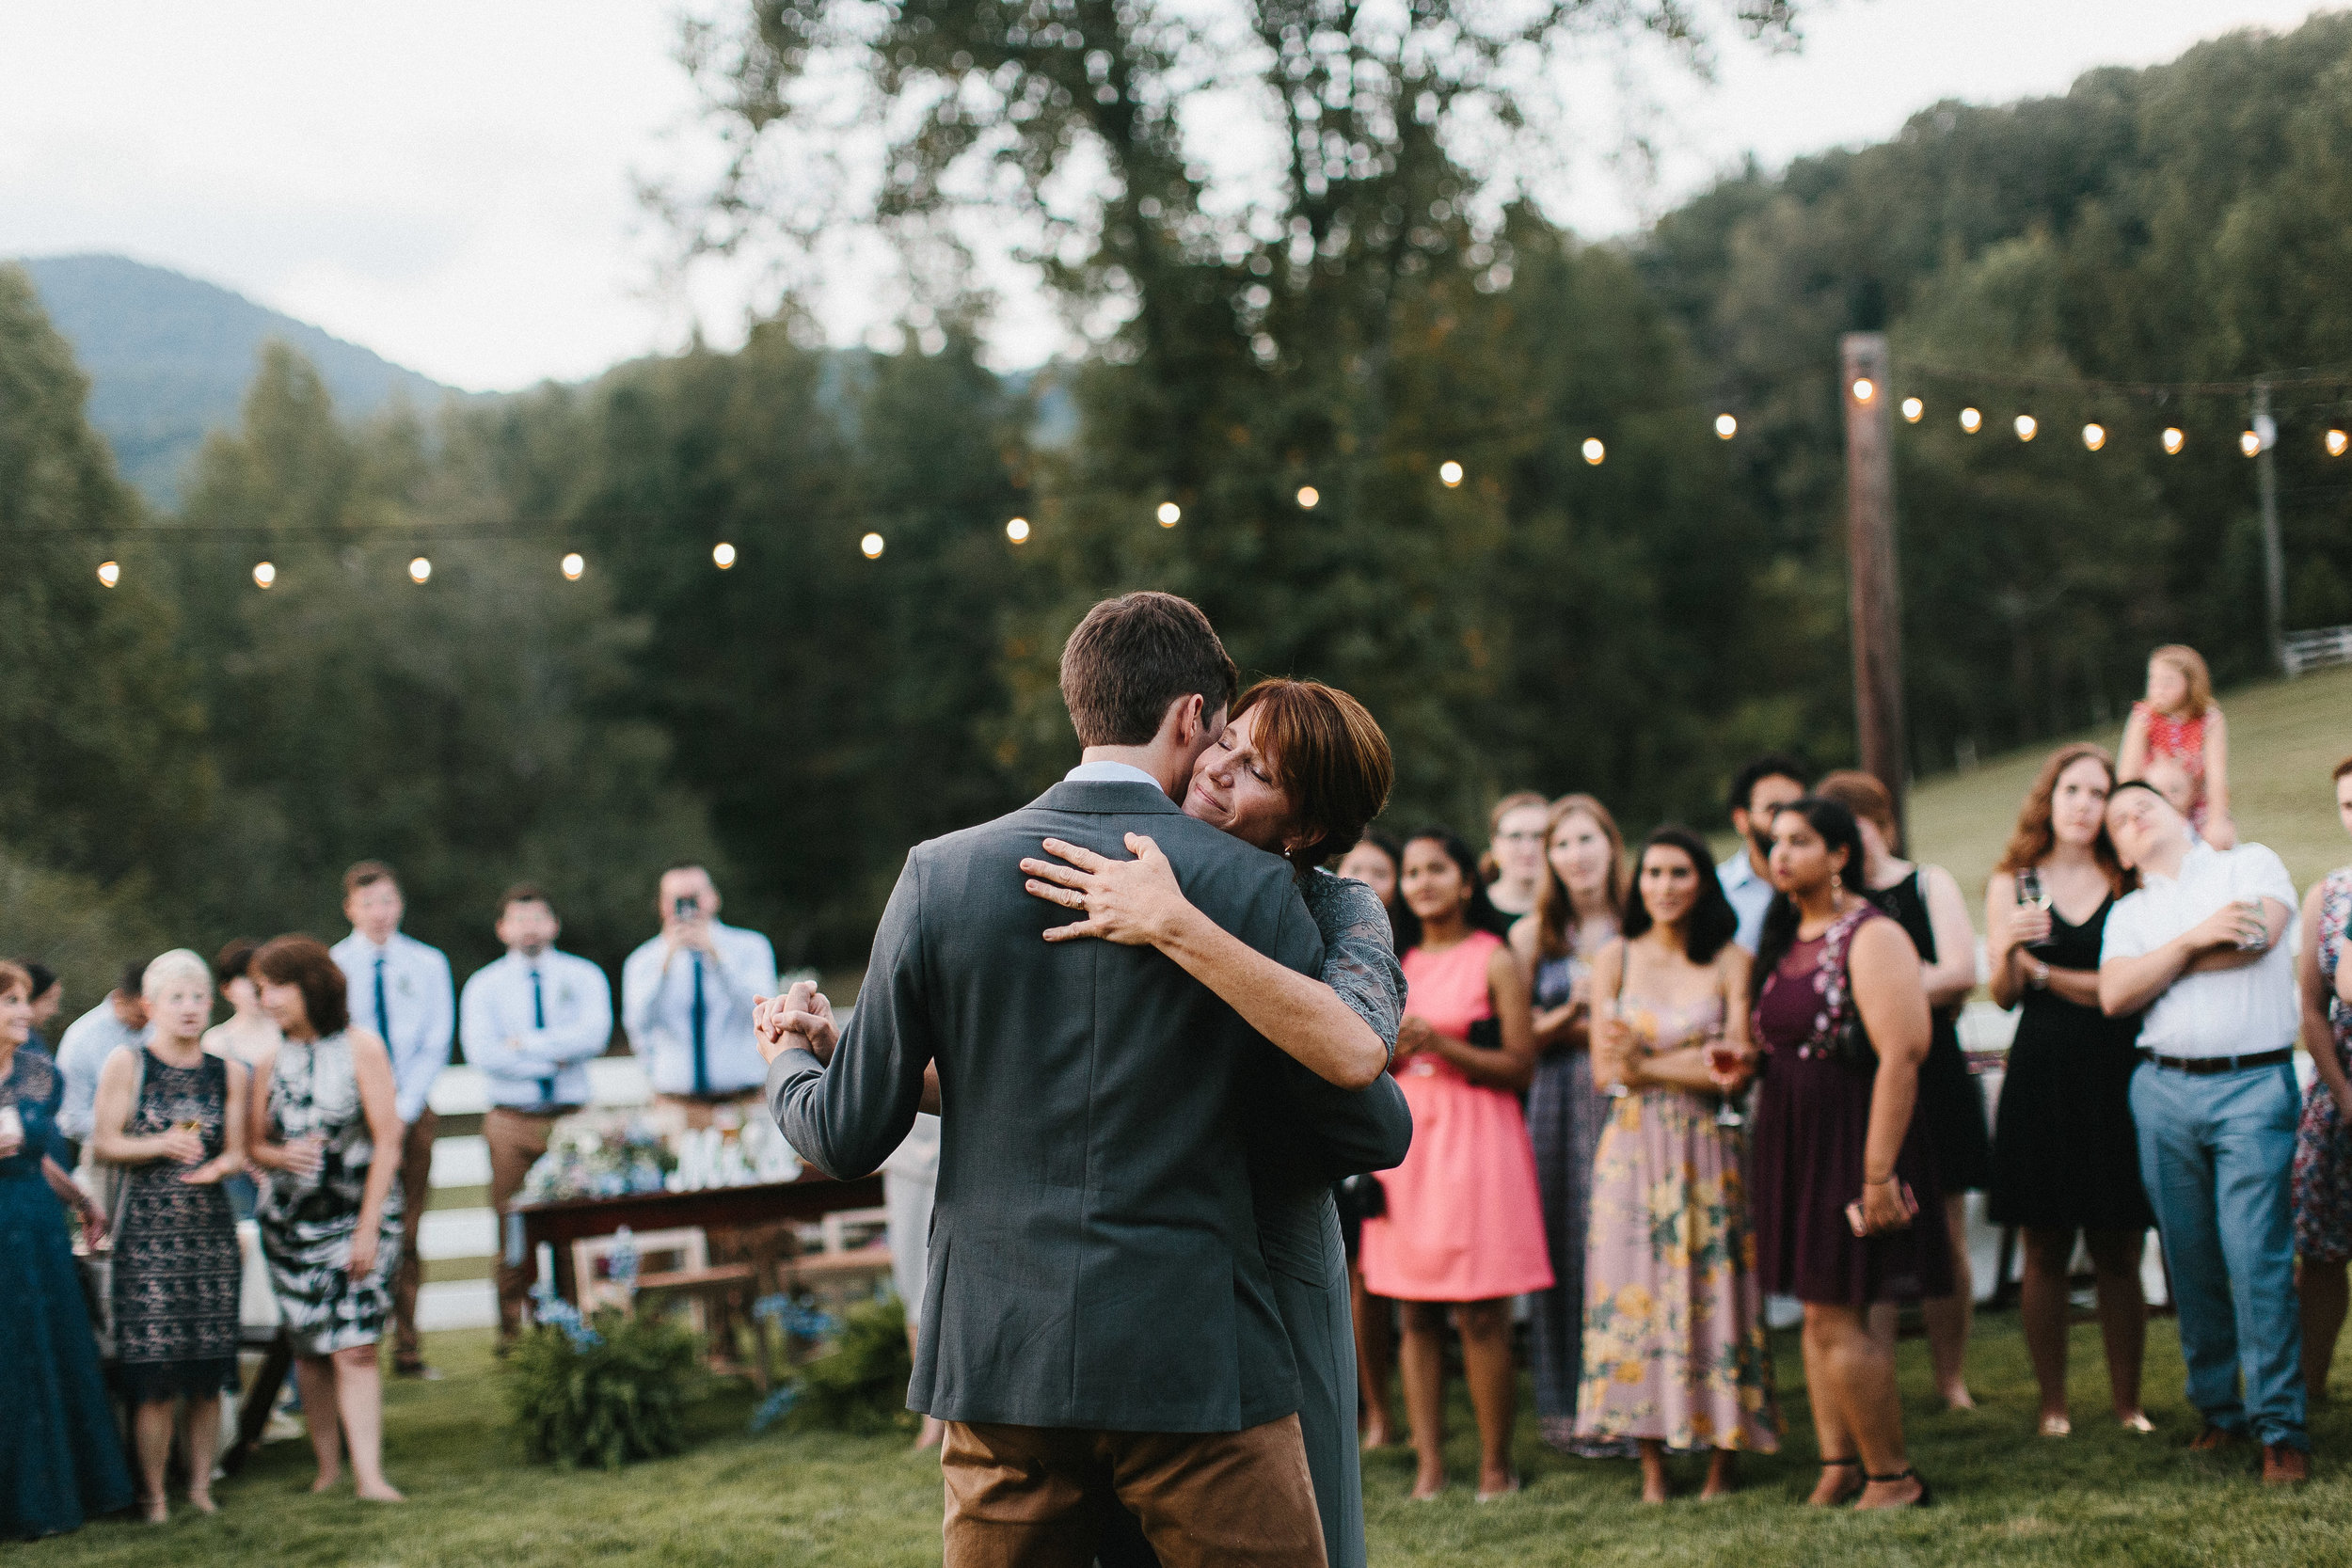 cleveland_georgia_mountain_laurel_farm_natural_classic_timeless_documentary_candid_wedding_emotional_photojournalism_river_west_1935.jpg